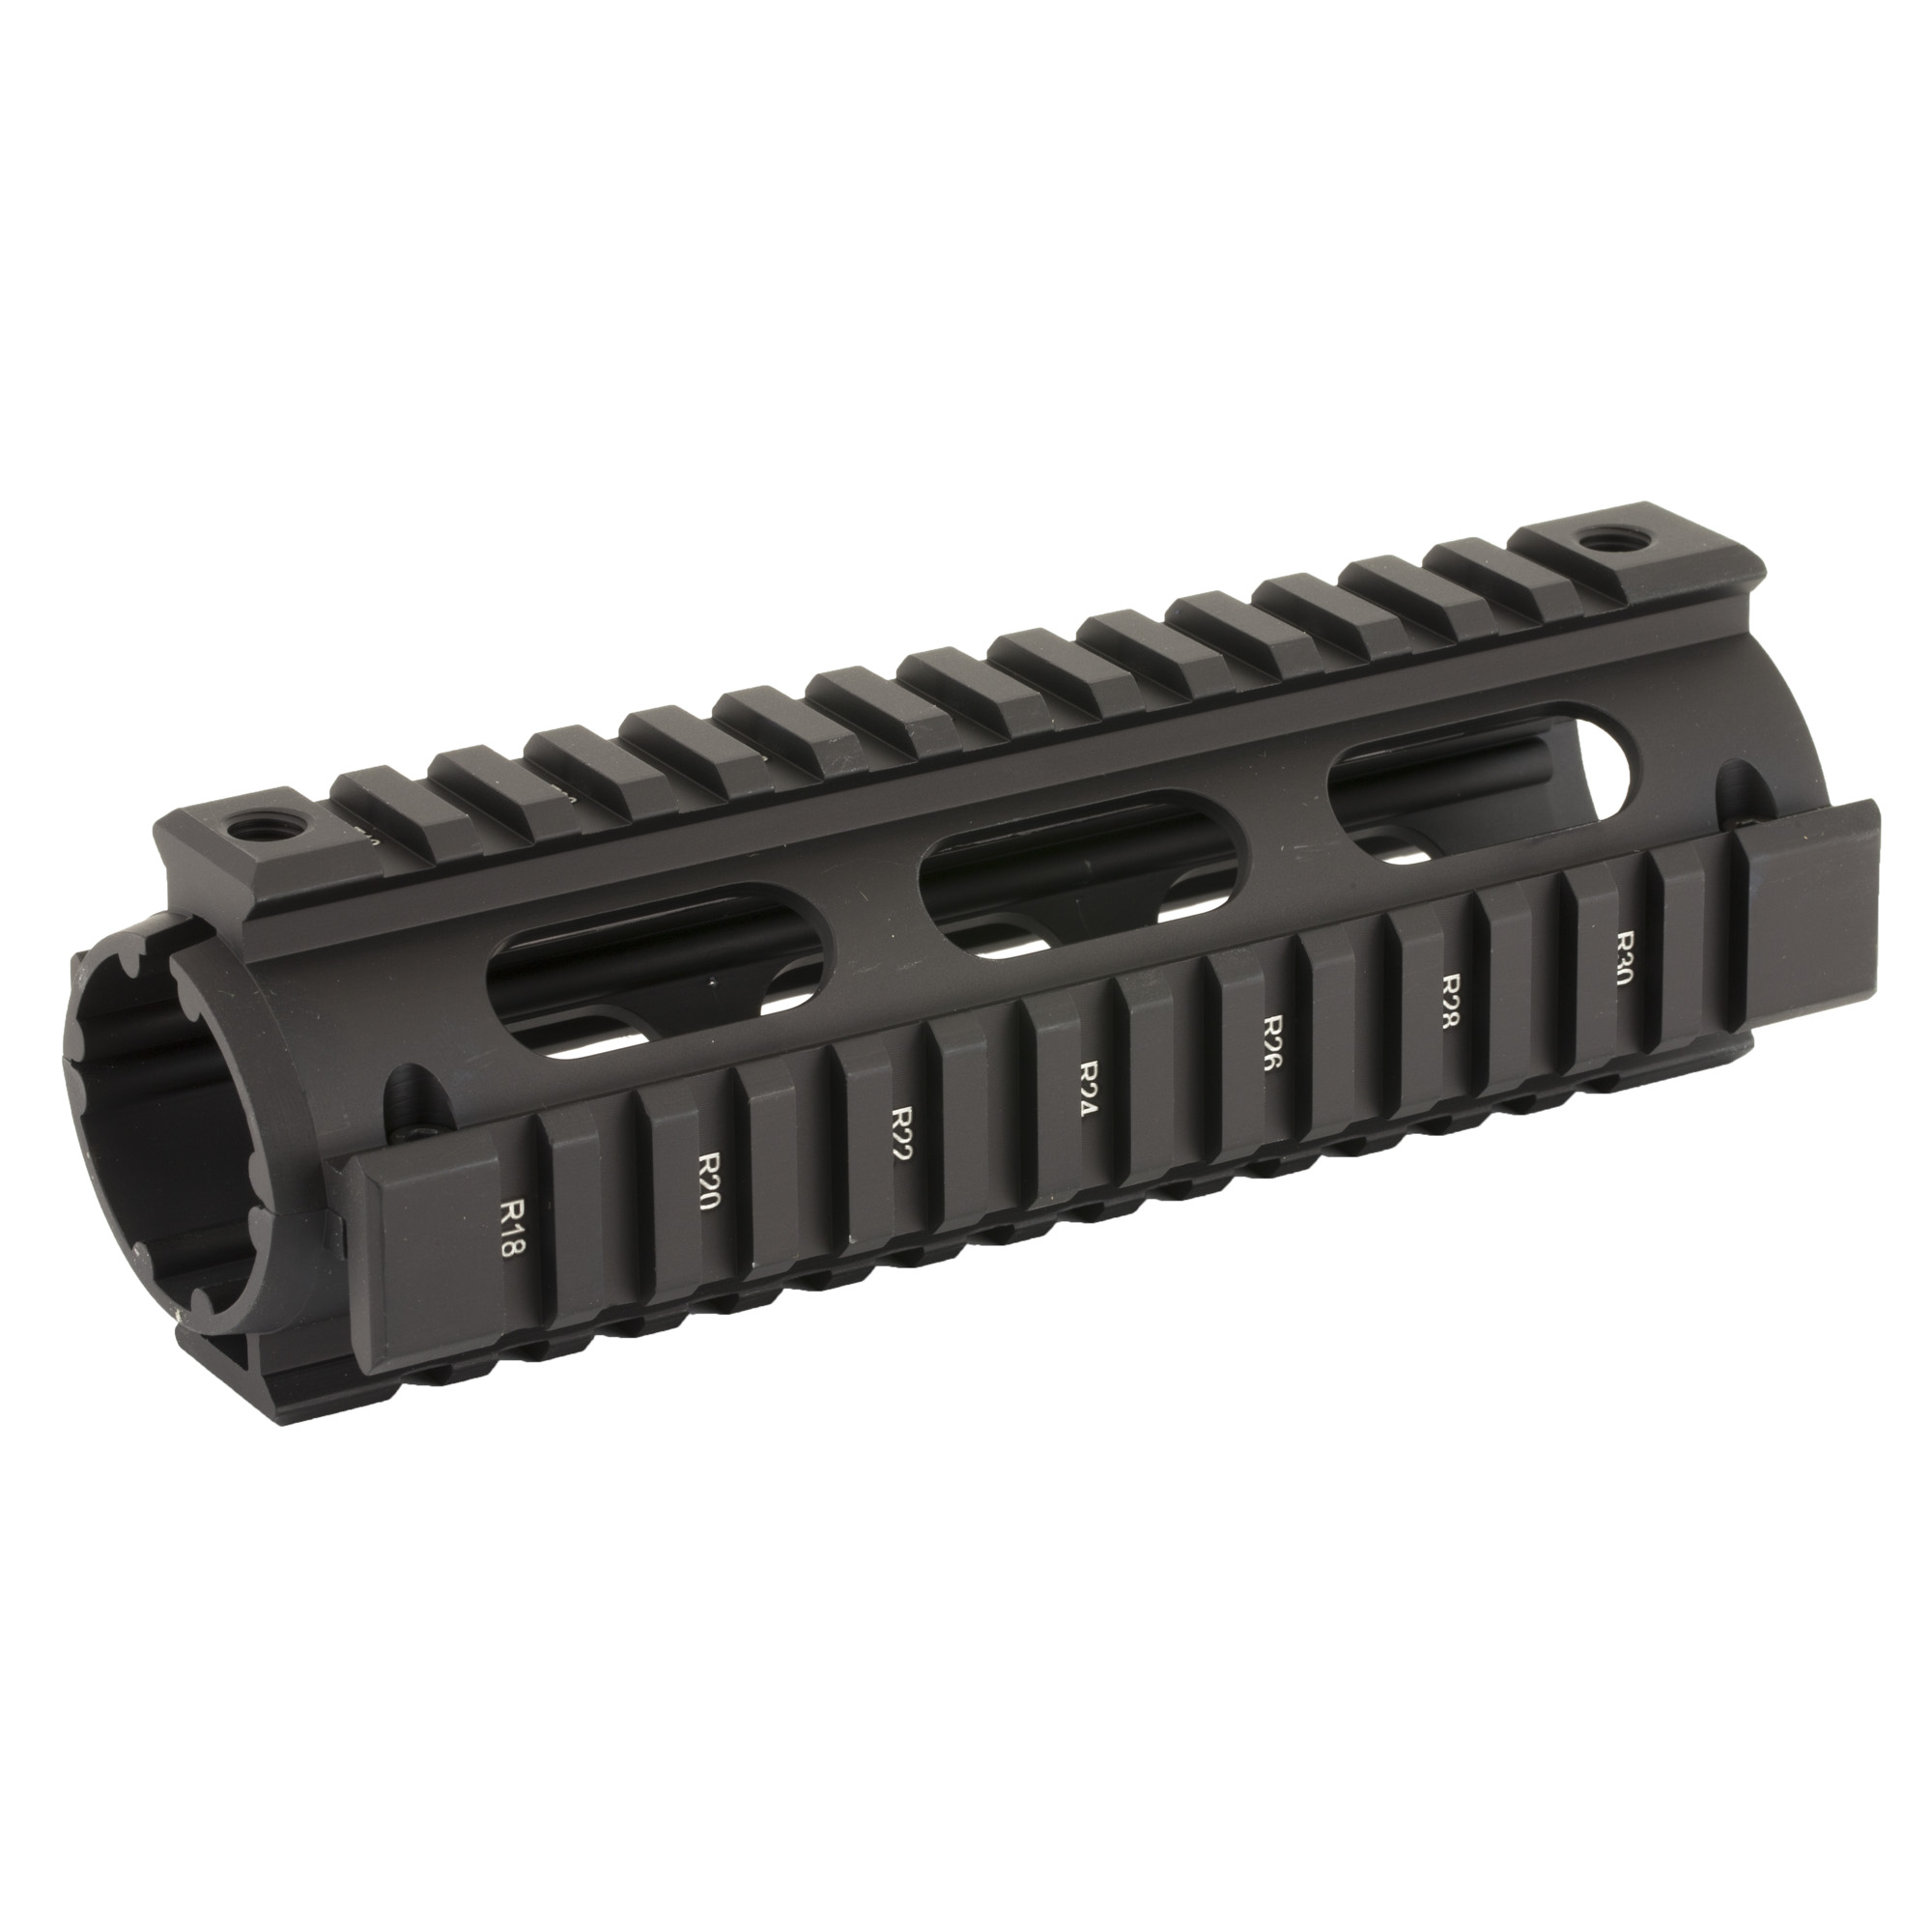 """Replace your original polymer AR-15 hand guard with a precision-machined quality aluminum drop in quad rail hand guard from Leapers UTG. This basic upgrade is easy enough for anyone to do while at the same time allowing you considerably more modularity over the stock hand guard. This drop in quad rail installs easily and quickly with no gunsmithing required and requires no permanent modification to the firearm. The quad rail sections conform to mil-spec picatinny rails allowing you to mount a whole host of accessories such as lights"""" lasers"""" foregrips and more. The drop in quad rail is made from high quality aluminum and features a durable hard coat anodized matte black finish."""